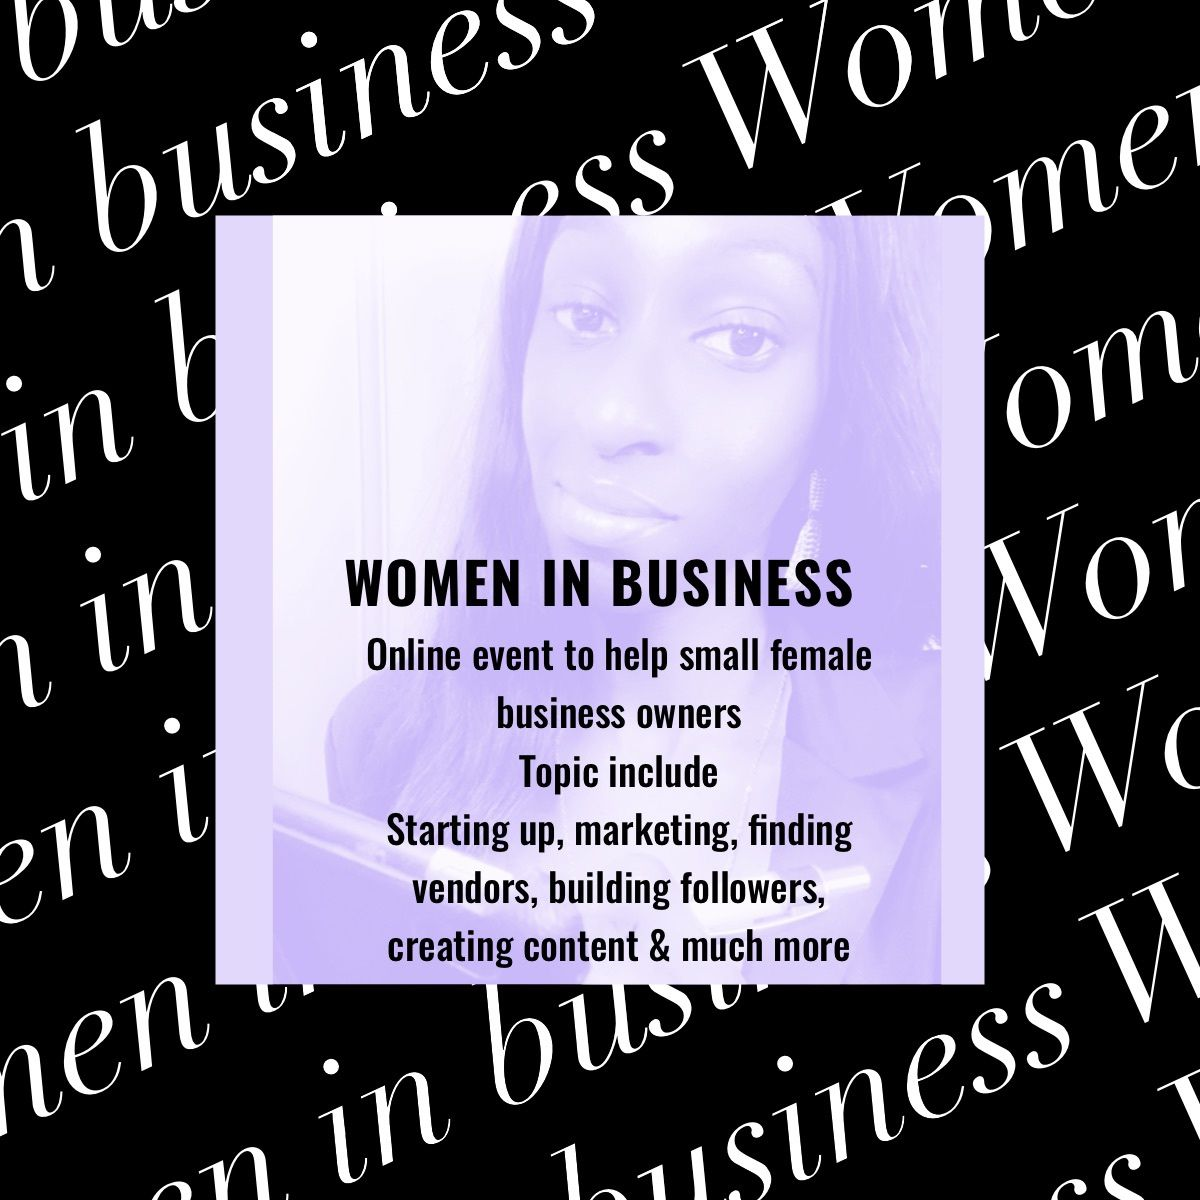 You asked So I delivered!!!!! Women in Business Event We will discuss EVERYTHING business From starting, Building, Growing and keeping a business December 19, 2020 Link in bio to secure your tickets #girlboss #femaleentrepreneur #pryncessfoundation #coachingwomen #entrepreneur #bosslady #womeninbiz #womensupportingwomen #creativeentrepreneur #toronto #business #motivation